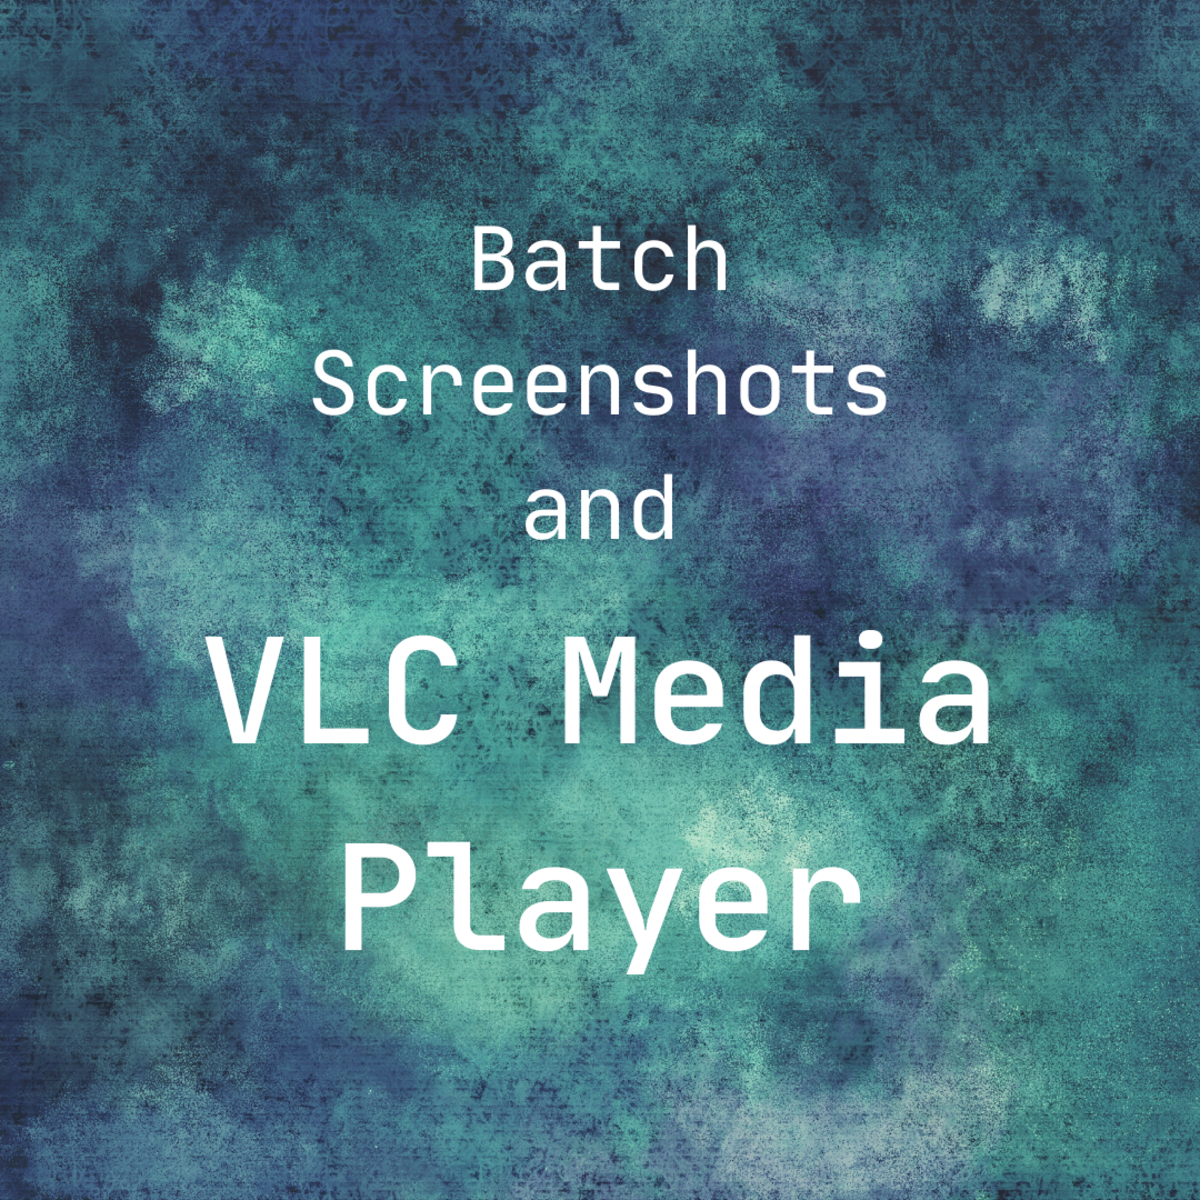 A brief tutorial on how to take batch screenshots on VLC Media Player